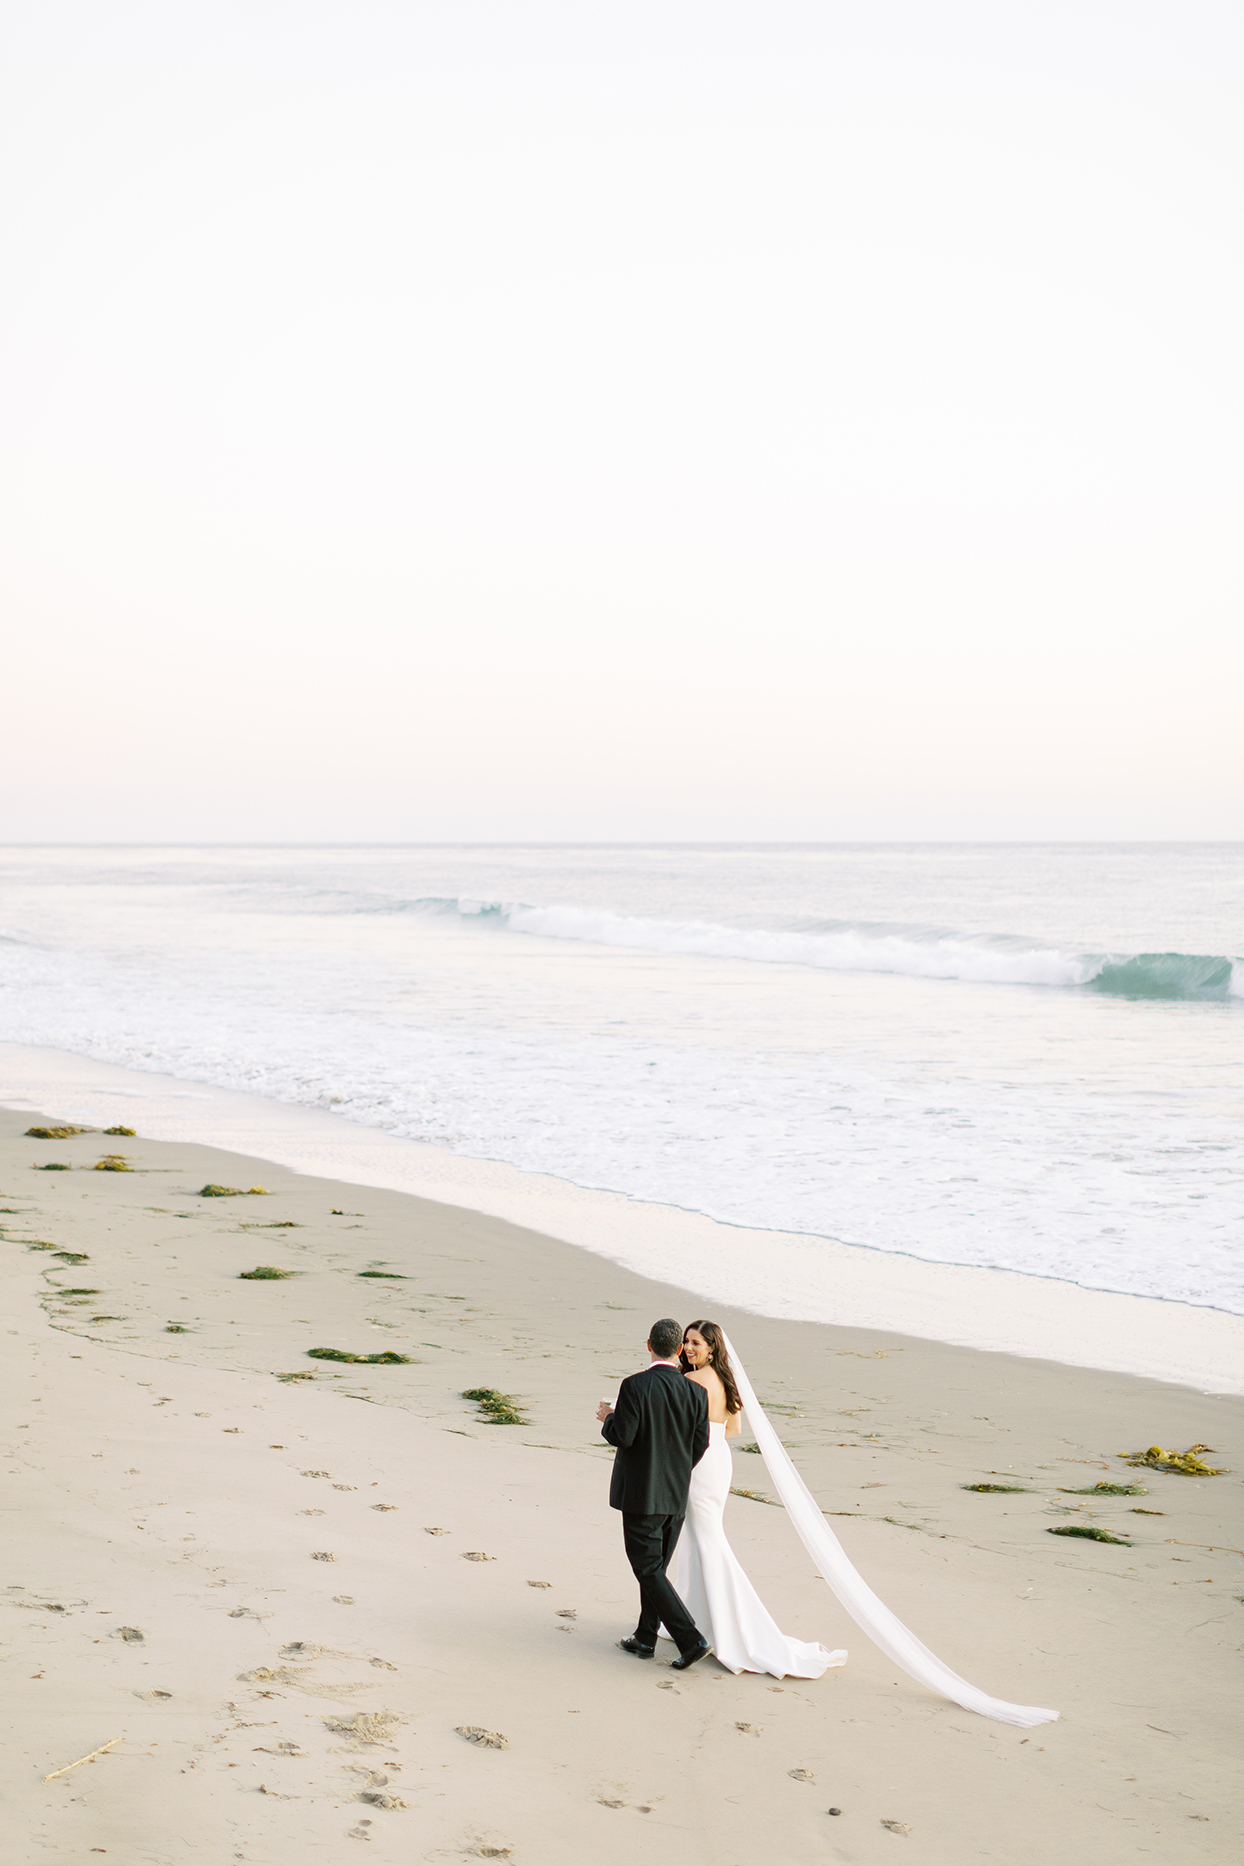 wedding couple walking and talking together on the beach